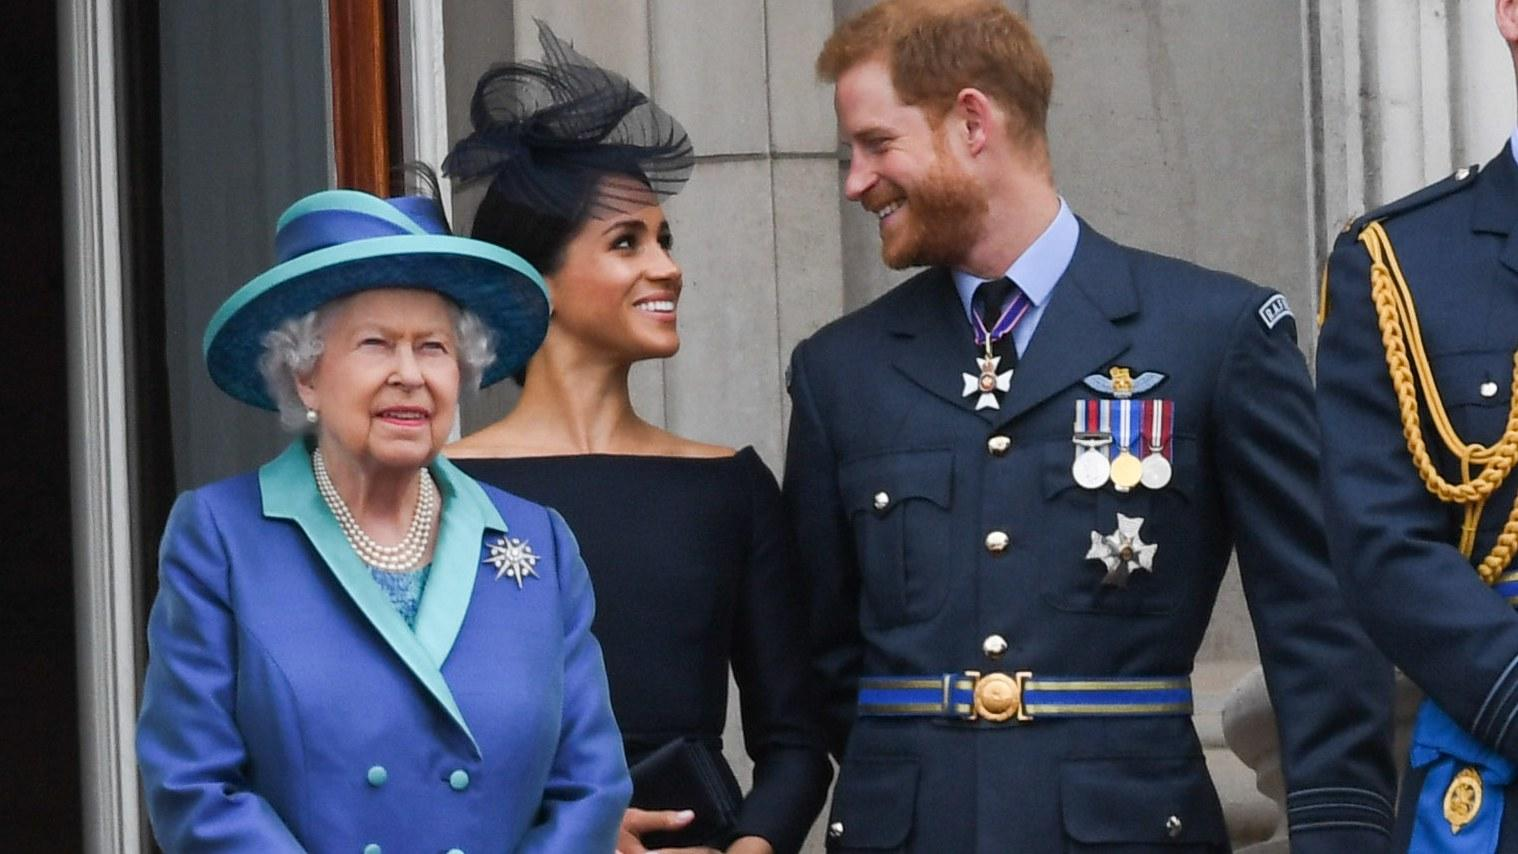 Prince Harry And Meghan Markle Will Struggle To Exit The Royal Family In The Way That They Want To And Here's Why!